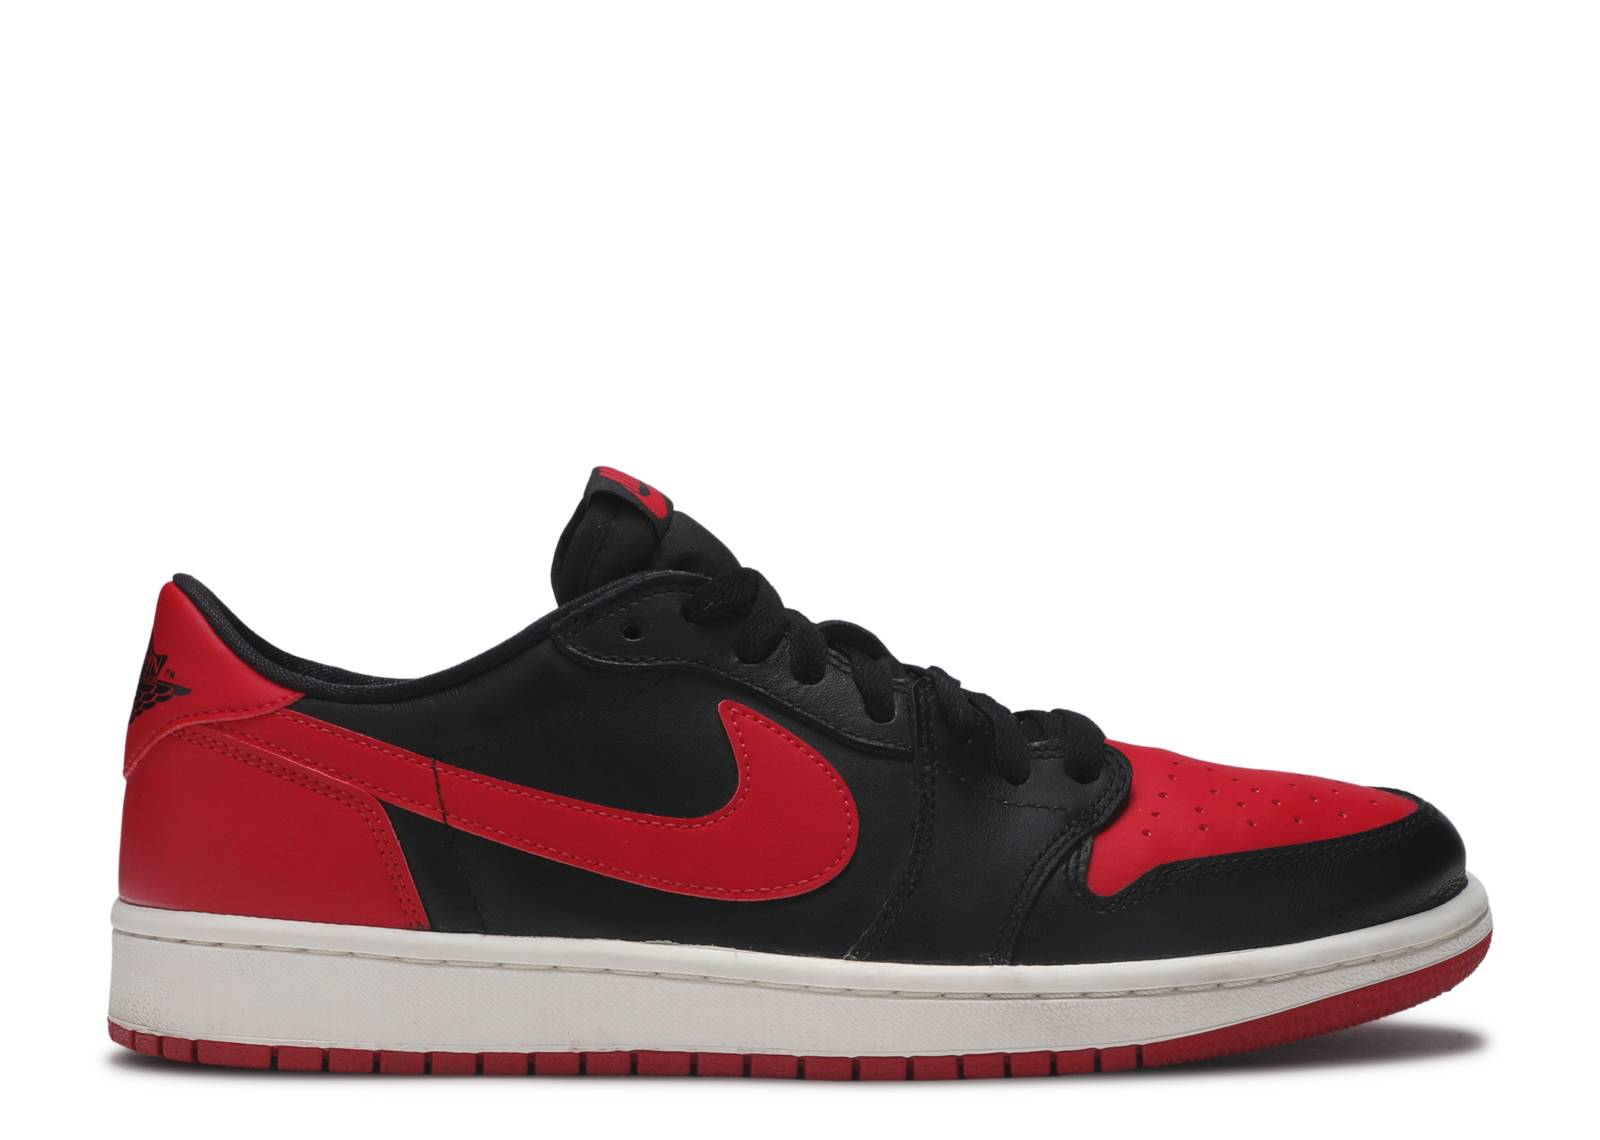 c3c7d71849d7 Air Jordan 1 Retro Low Og